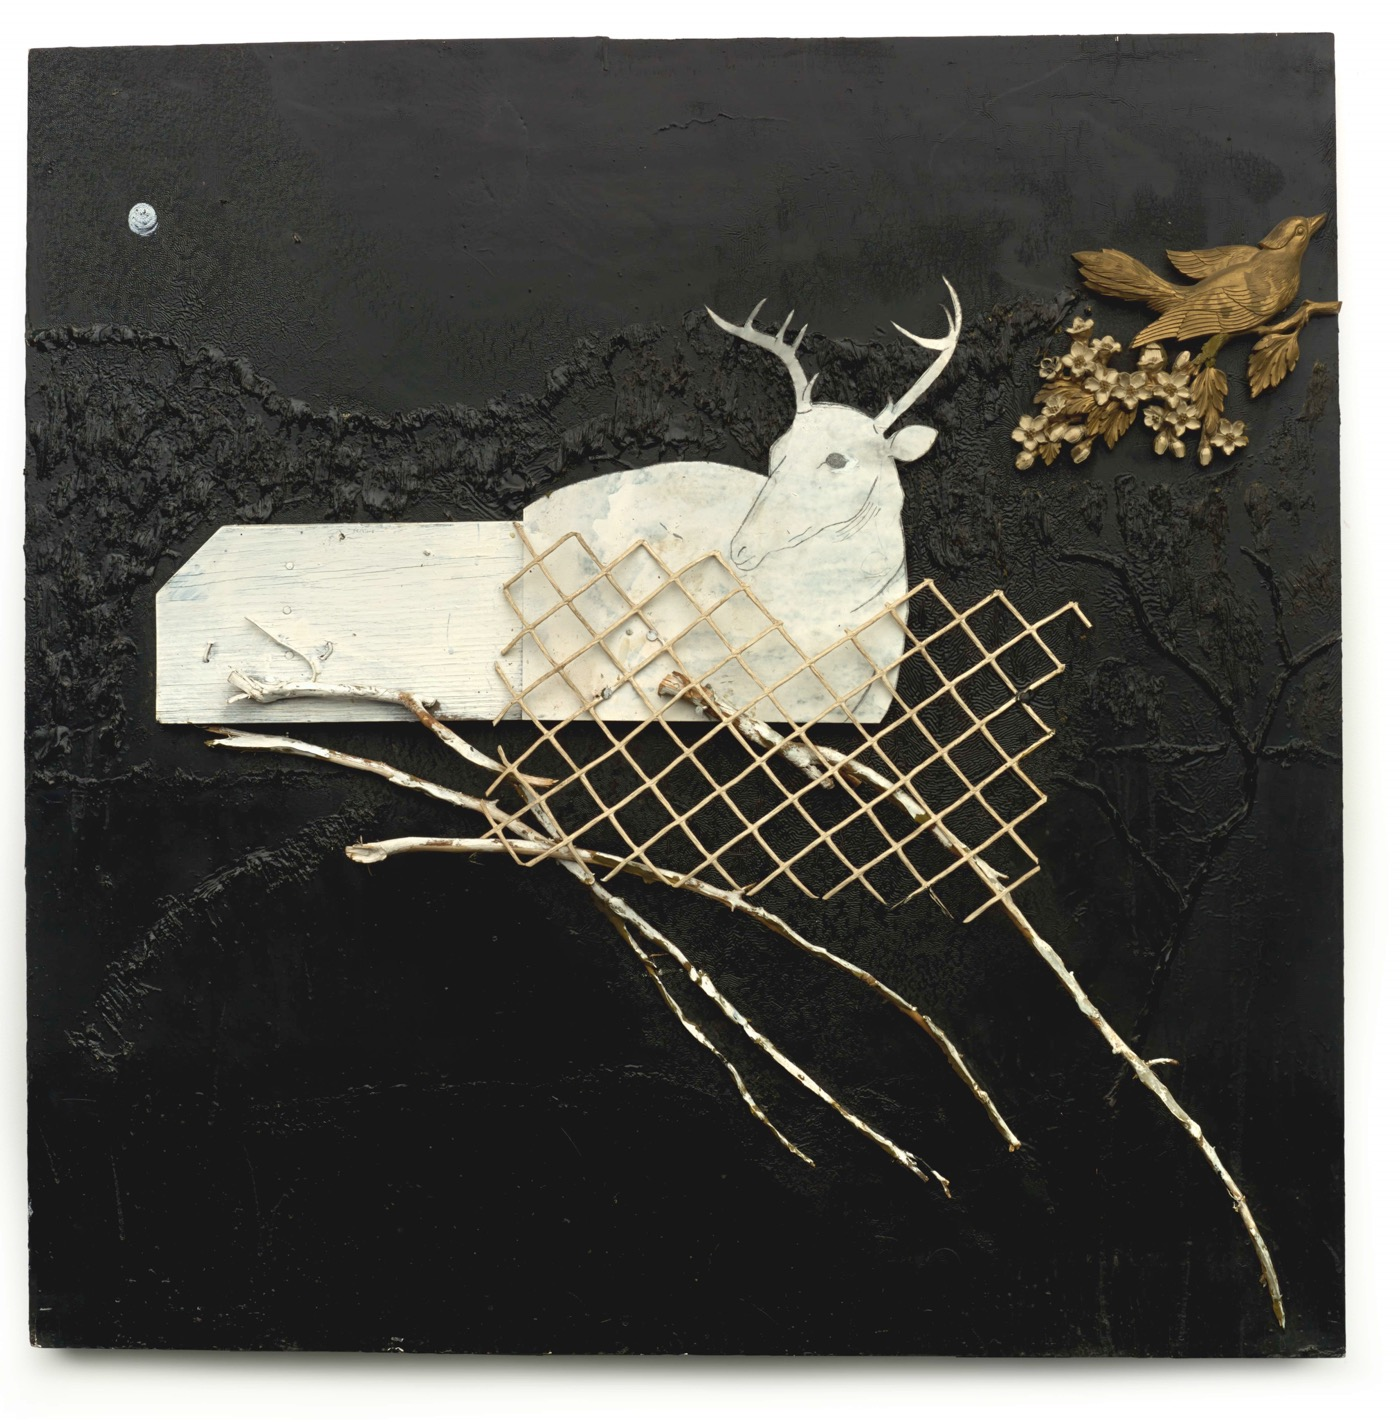 """Ronald Lockett (1965–1998, Bessemer, Alabama) Traps (Golden Bird) Bessemer, Alabama 1990 Chain-link fencing, branches, cut tin, industrial sealing compound, and found plastic bird and berries 48 x 48 x 4"""" Collection of Tinwood LLC, L2015.15.15 Photo by Stephen Pitkin / Pitkin Studio"""